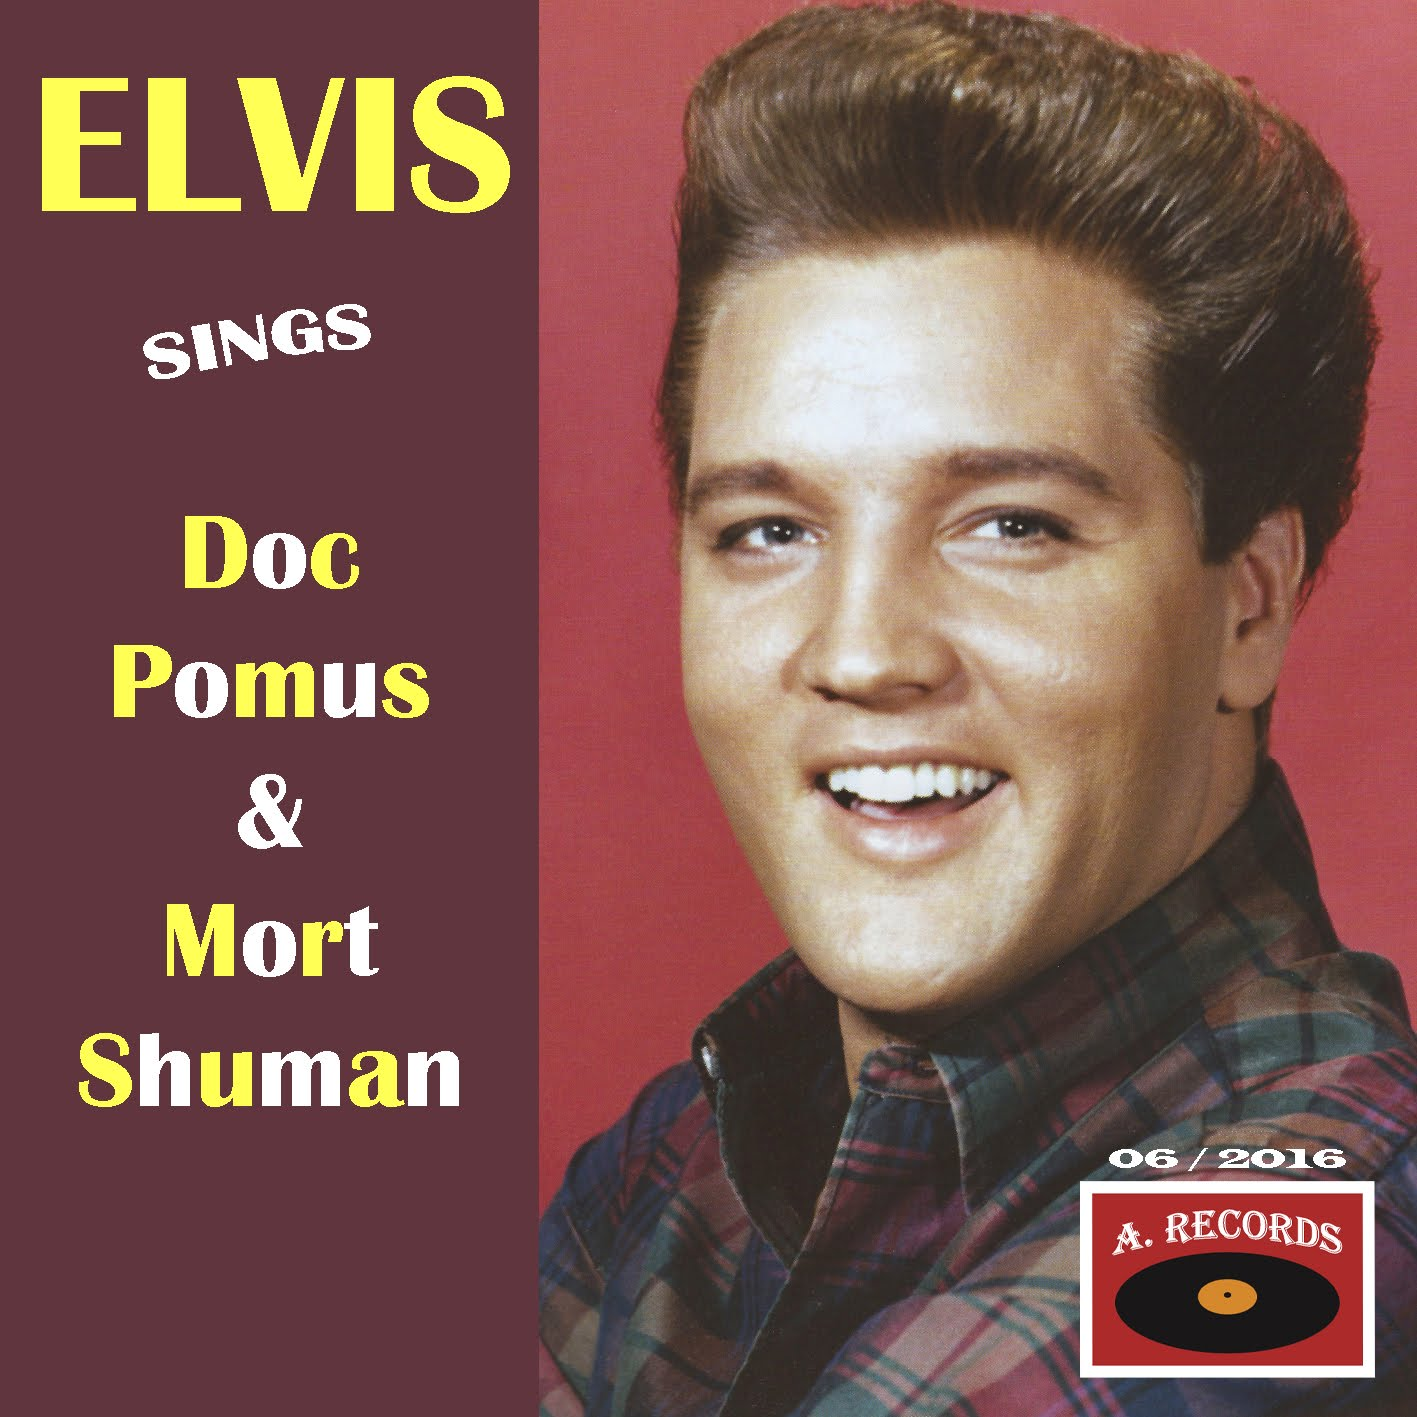 Elvis Sings Doc Pomus & Mort Shuman (June 2016)